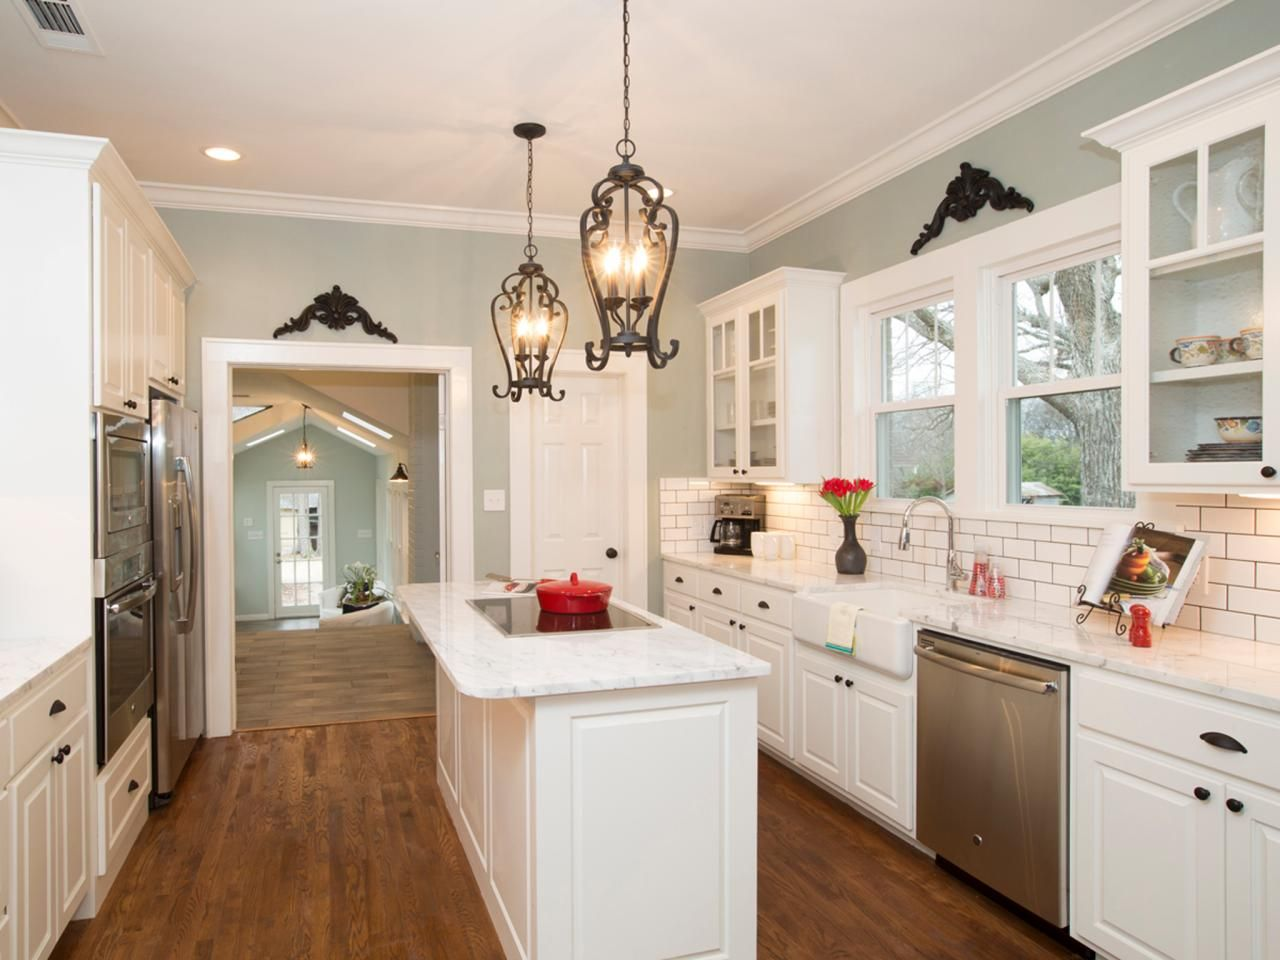 as seen on hgtv s fixer upper this gorgeous cottage kitchen as seen on hgtv s fixer upper this gorgeous cottage kitchen features refinished hardwood floors